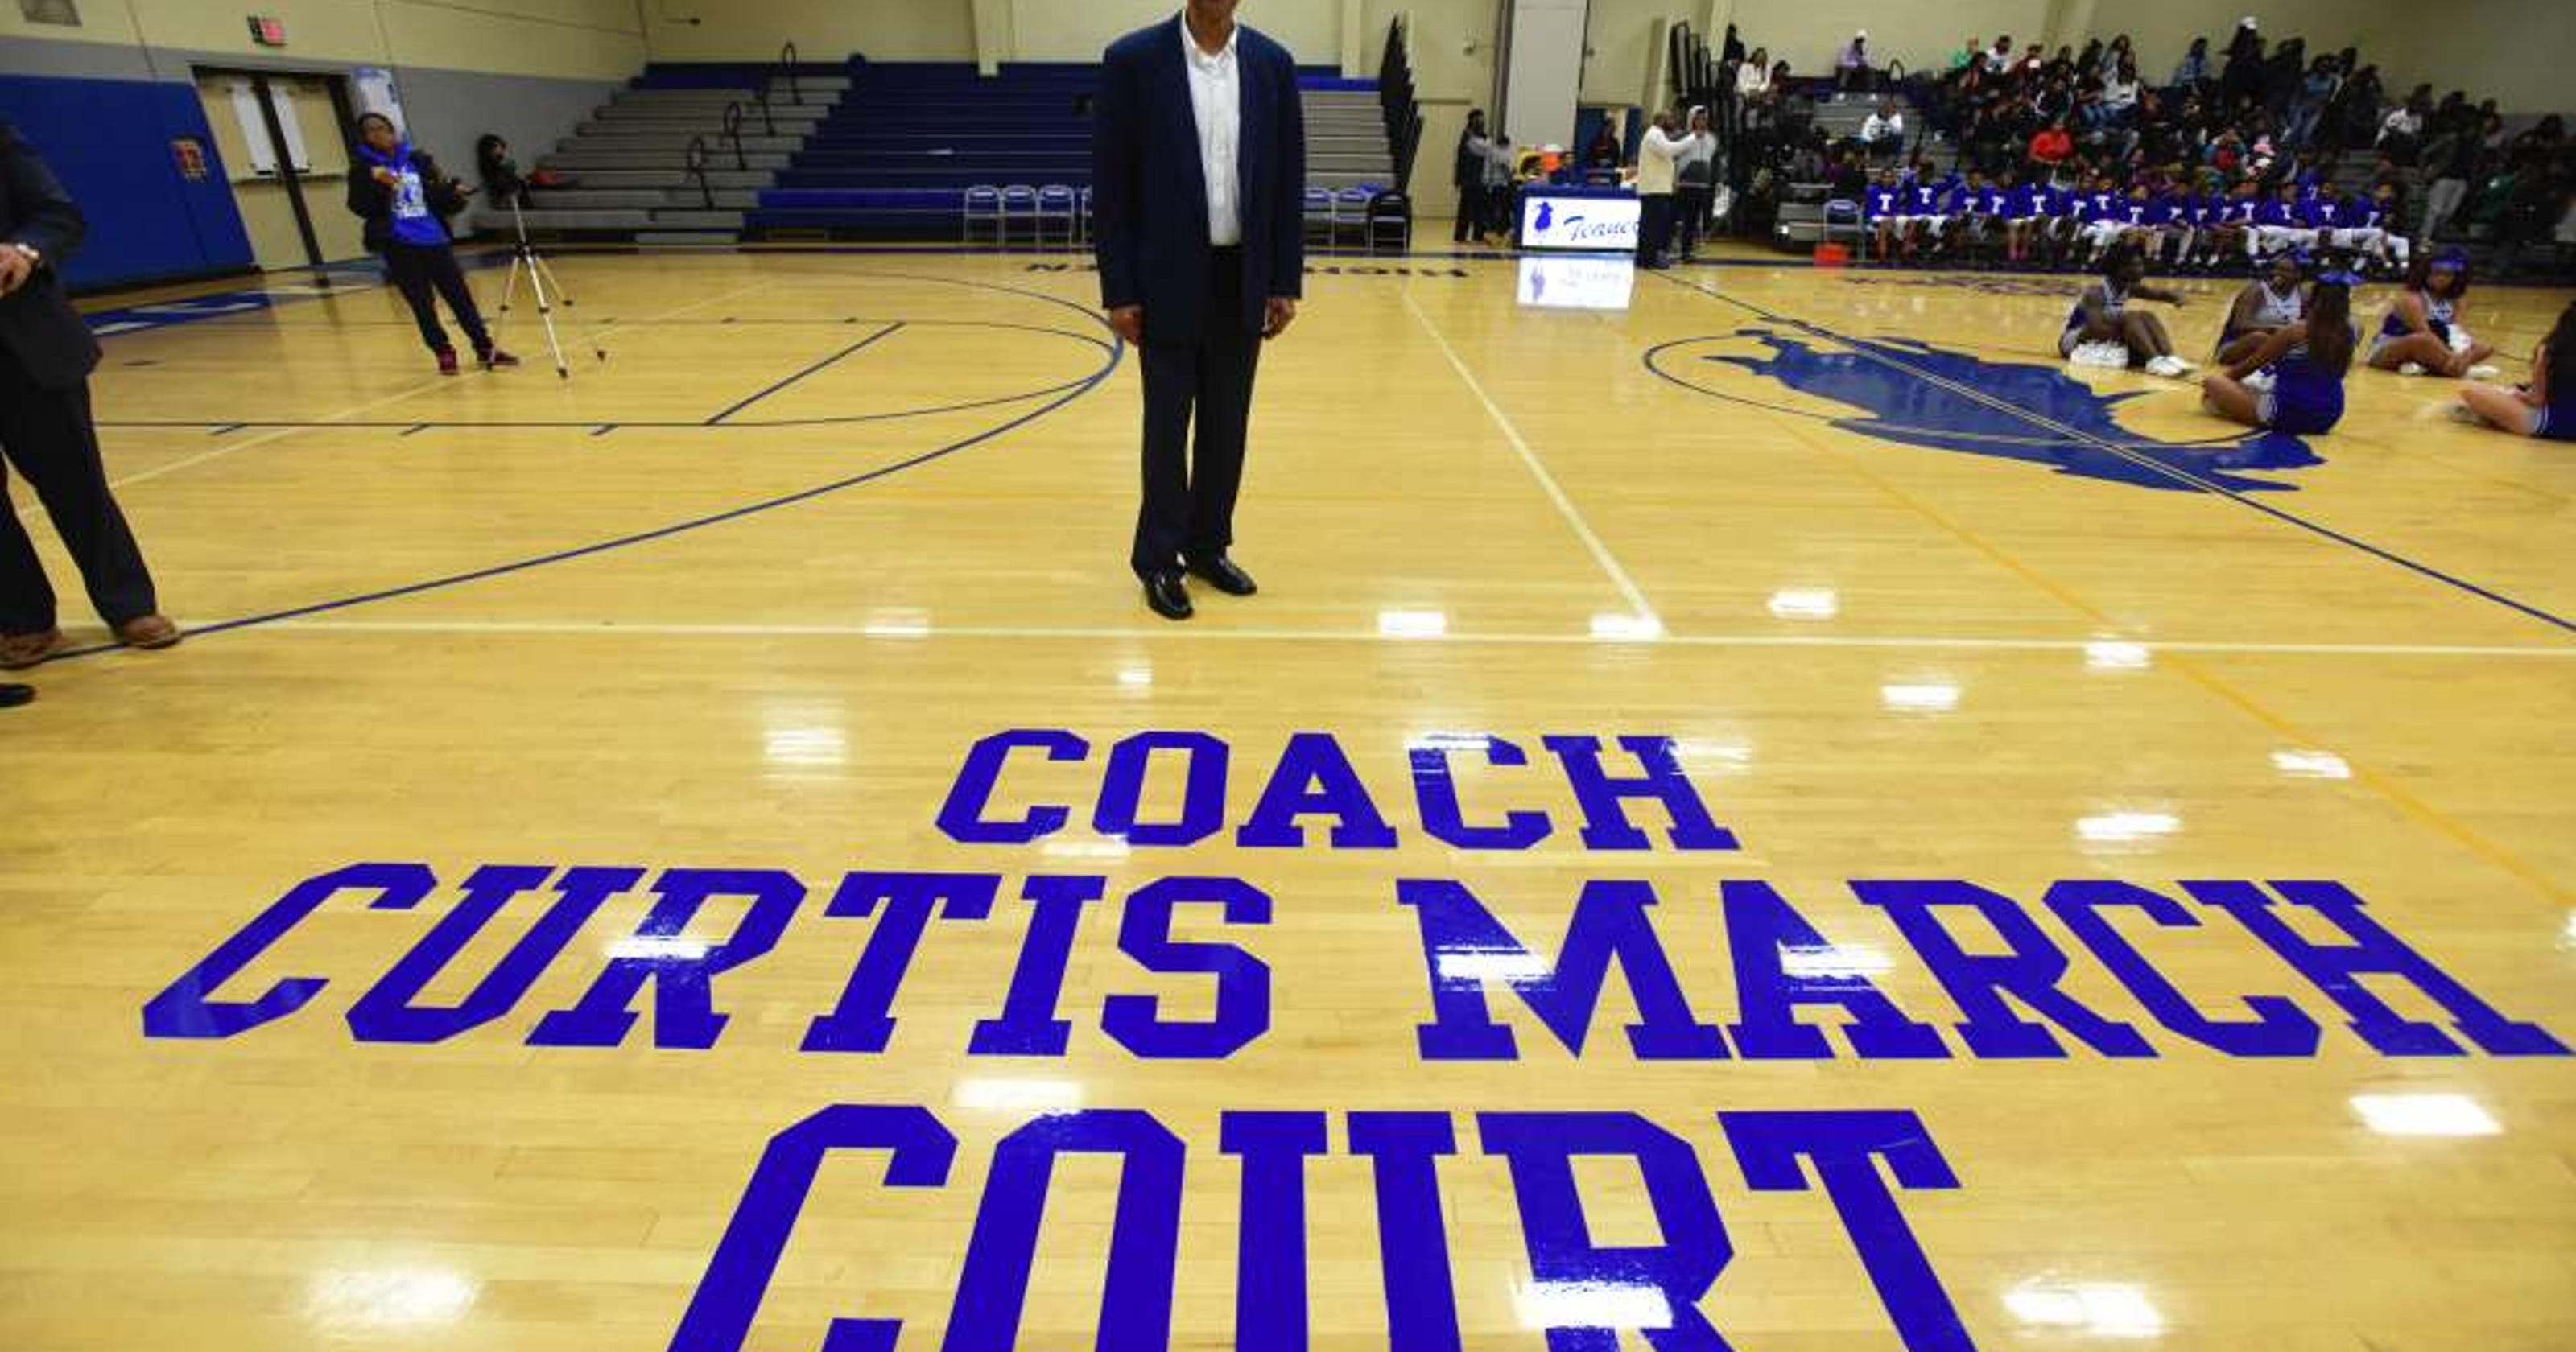 Teaneck High School Basketball Court Renamed In Honor Of Curtis March